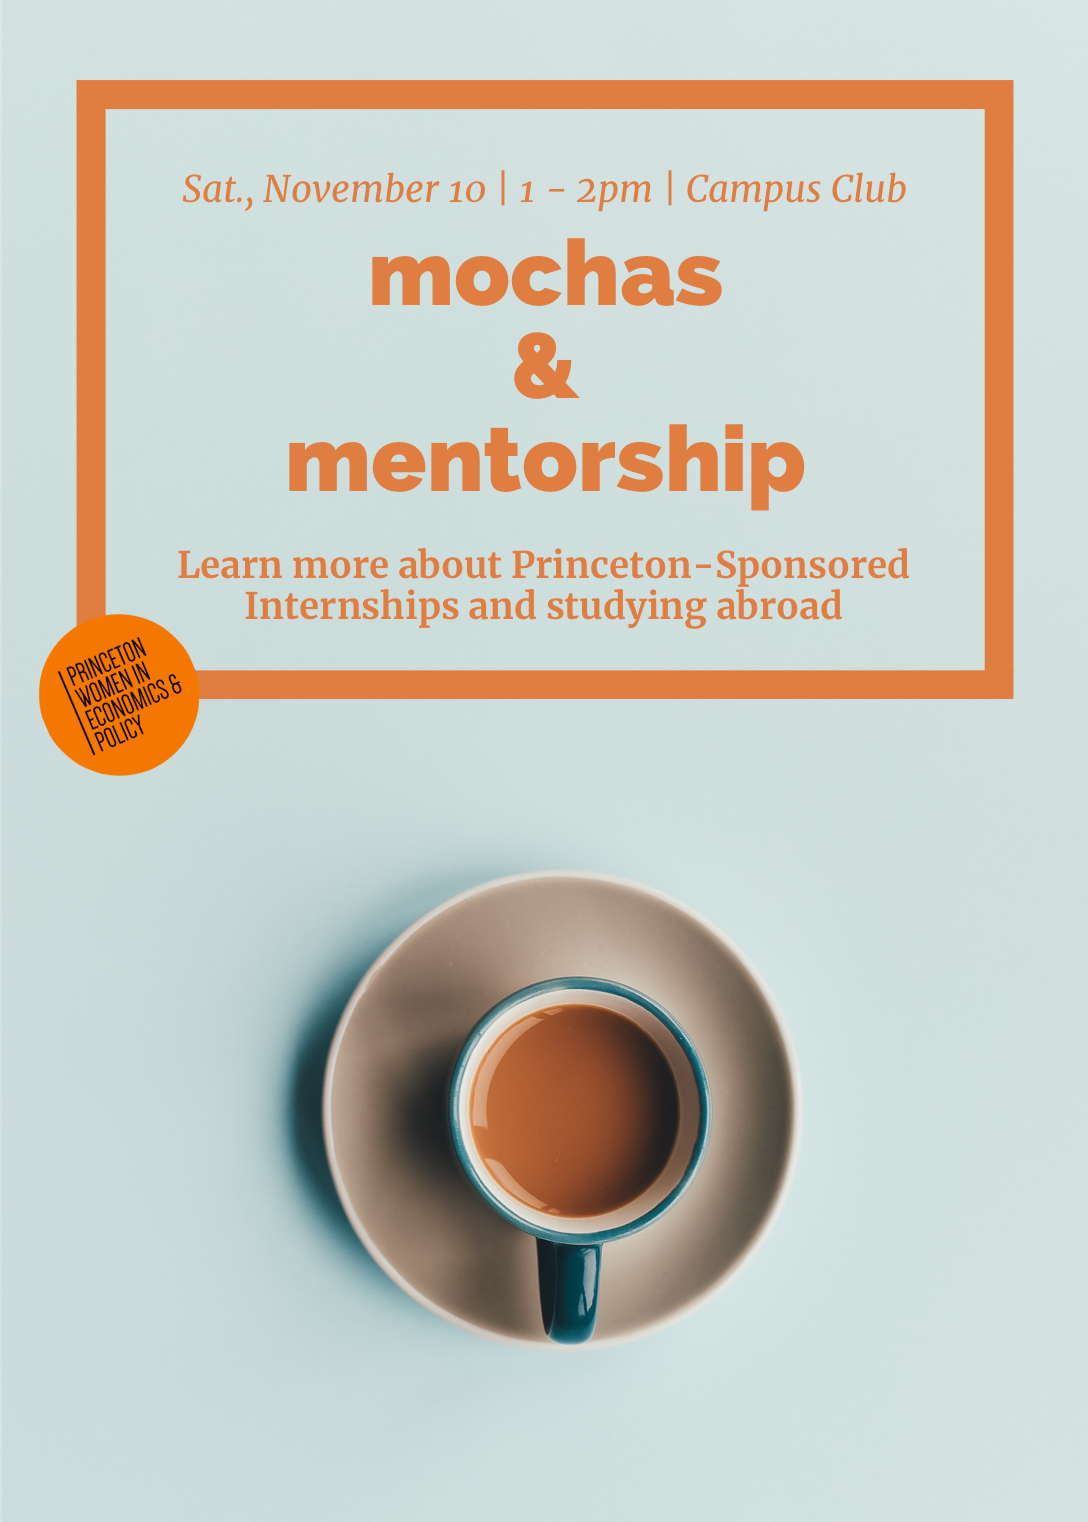 Mochas & Mentorship: Study Abroad and Internships - Princeton Women in Economics & Policy is excited to invite you to our Mochas & Mentorship event on studying abroad this Saturday, November 10th! Come out to Campus Club at 1pm to ask any questions about Princeton sponsored-internships abroad and studying abroad.We will have students who have participated in these programs to share their experiences and to answer questions about the application process. There will be Dunkin' Donuts coffee and donuts!Come for as long as you'd like! We hope to see you there.